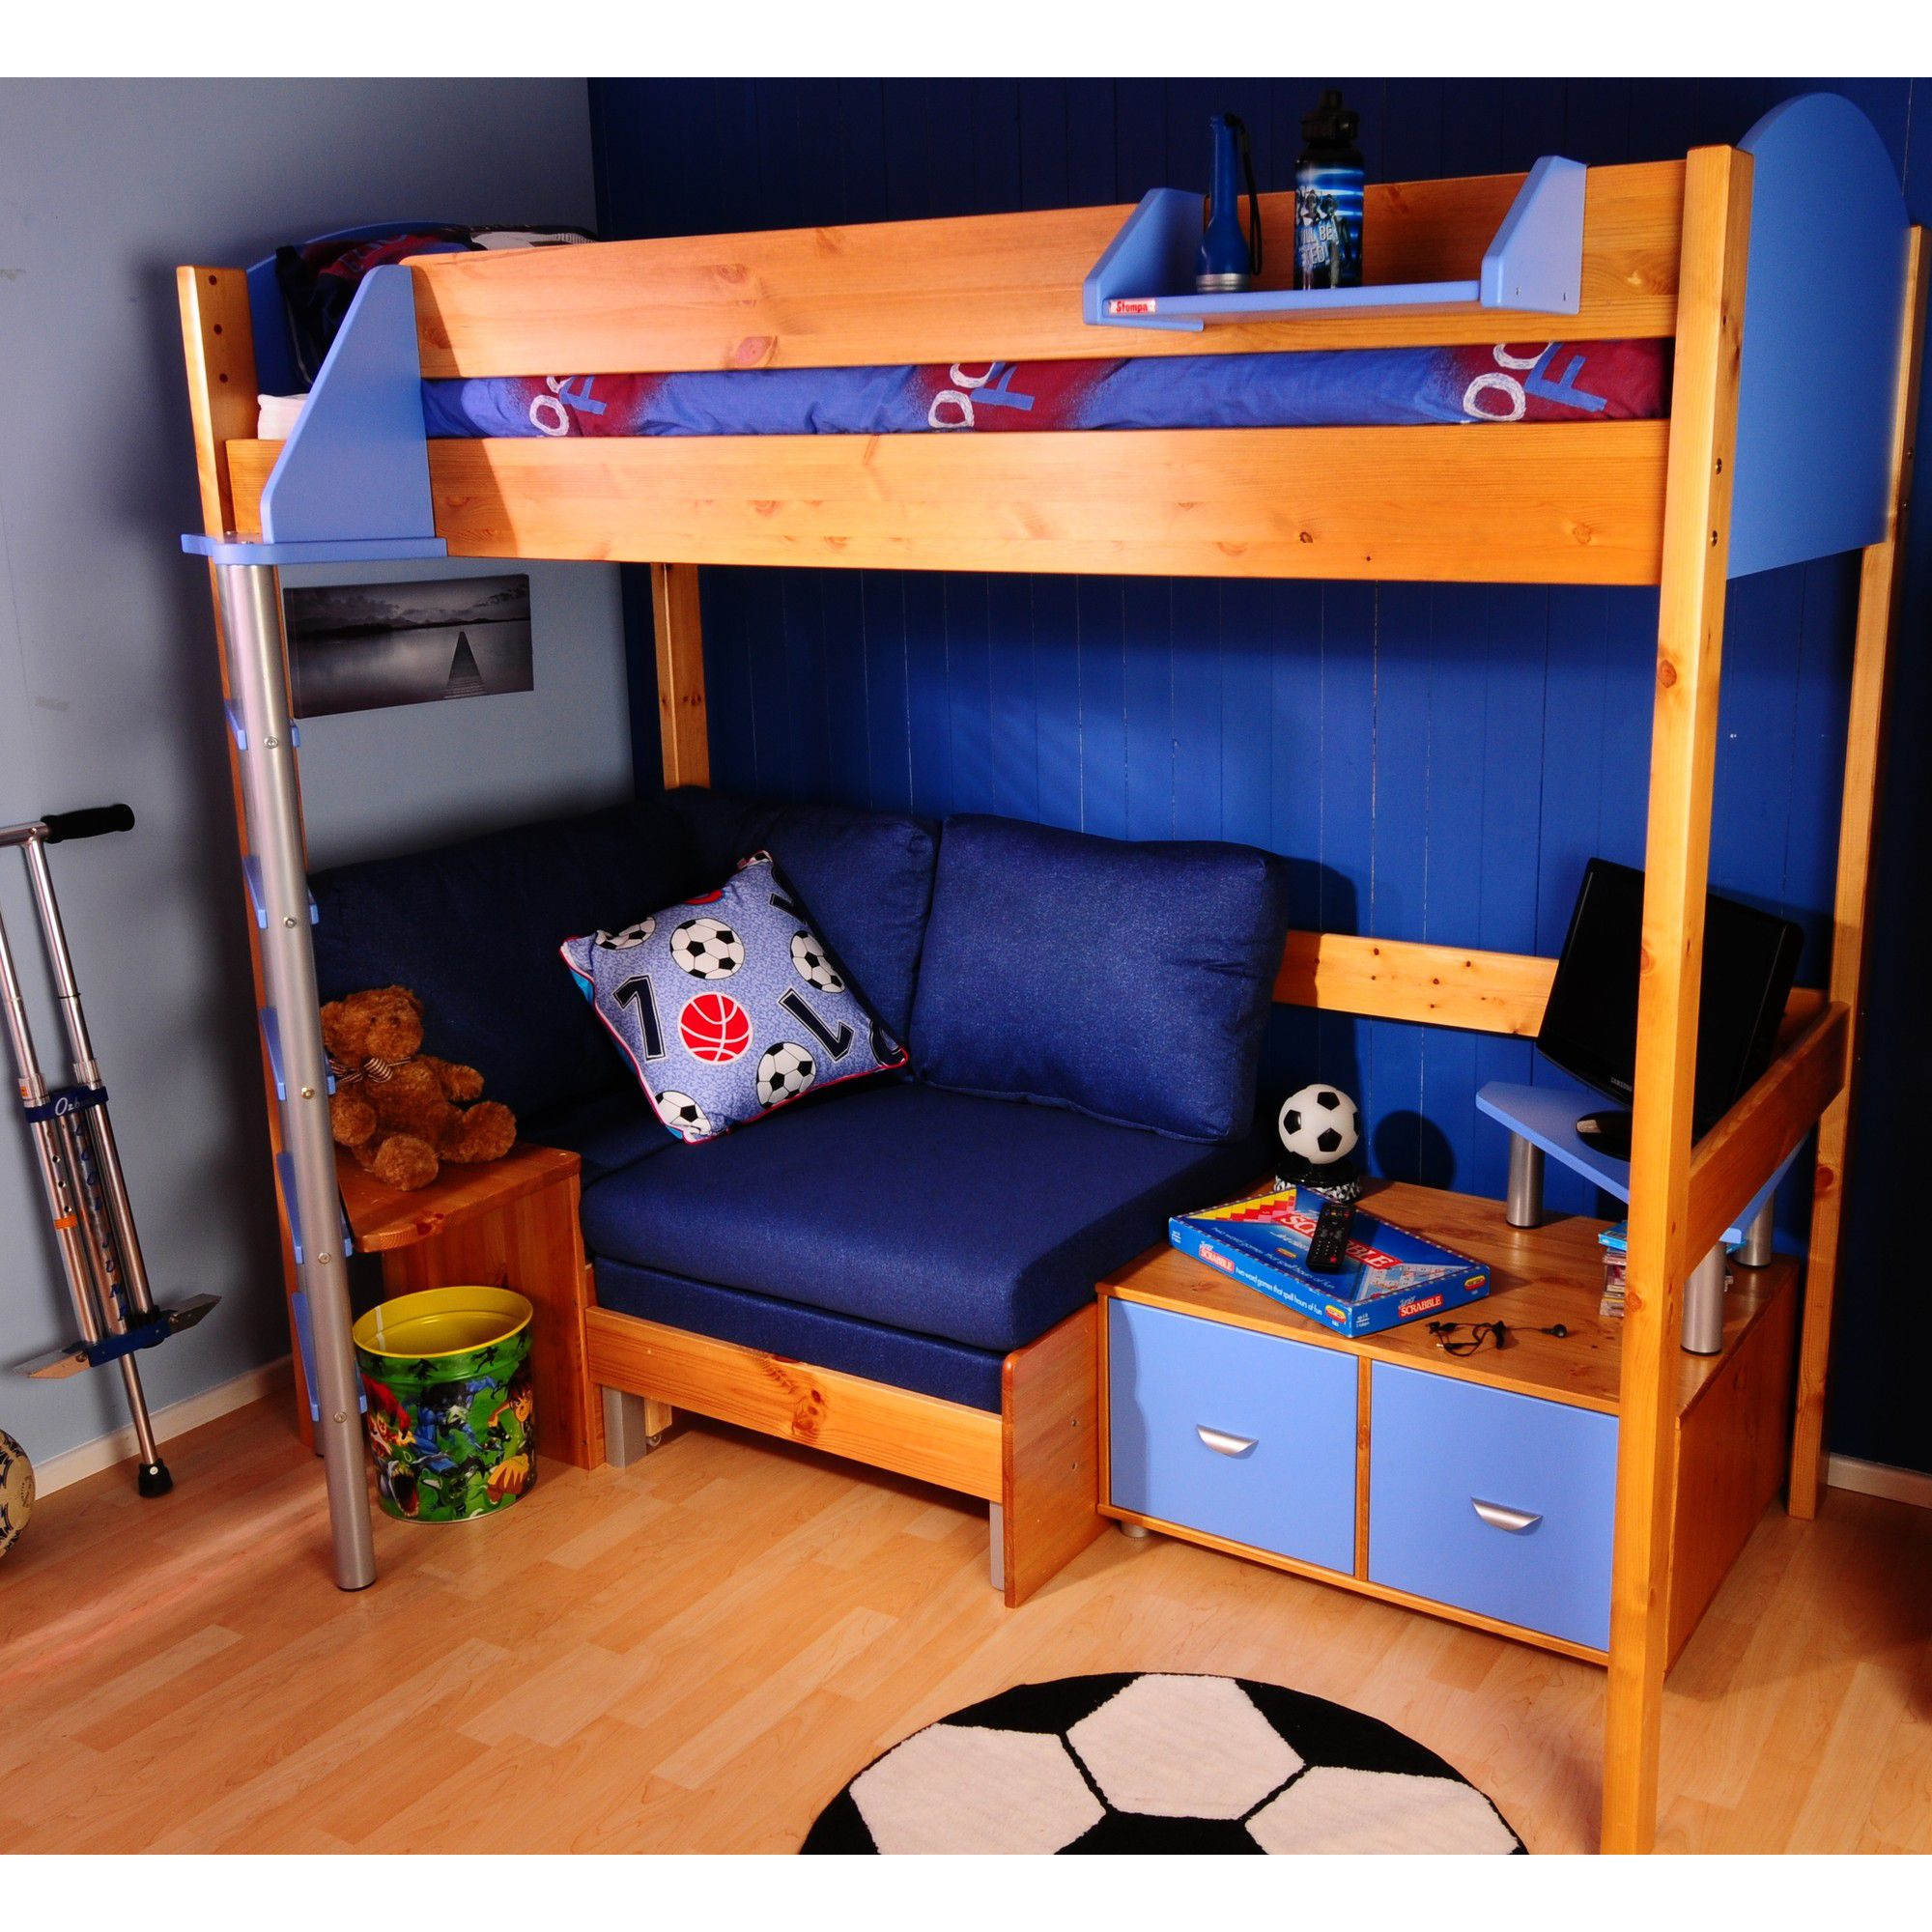 Stompa Casa High Sleeper Sofa Bed with 2 Cube Unit and TV Stand - Antique - Blue - Black at Tesco Direct